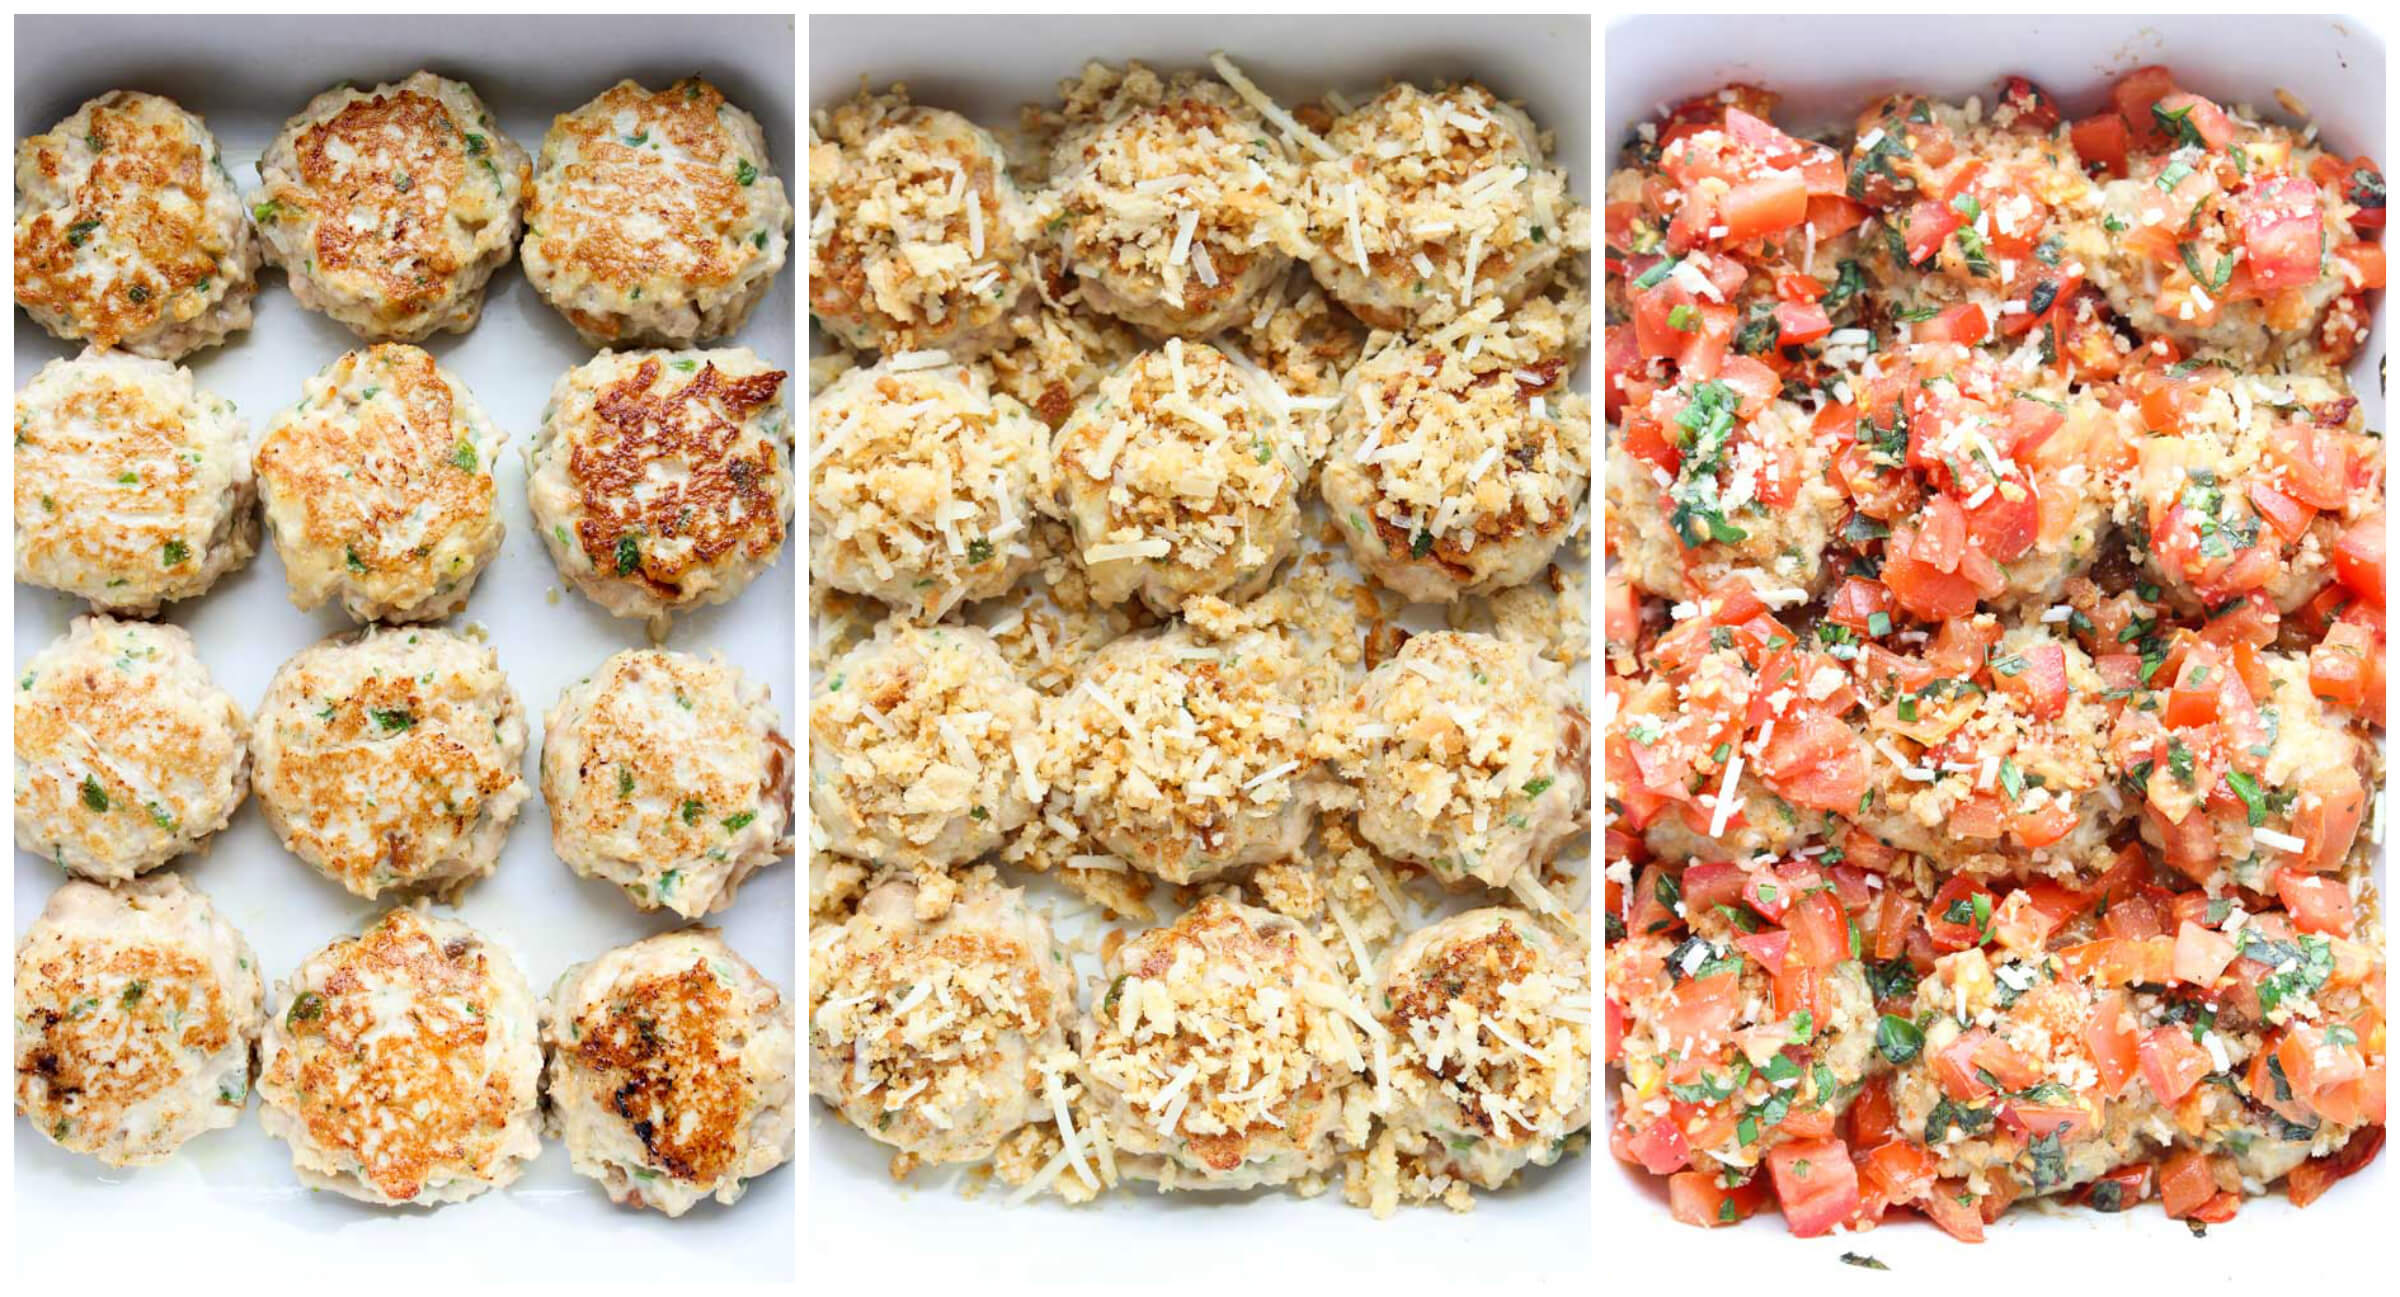 The juiciest chicken meatballs you will ever have! Stuffed with mozzarella and baked with bruschetta topping for an easy dinner! | littlebroken.com @littlebroken